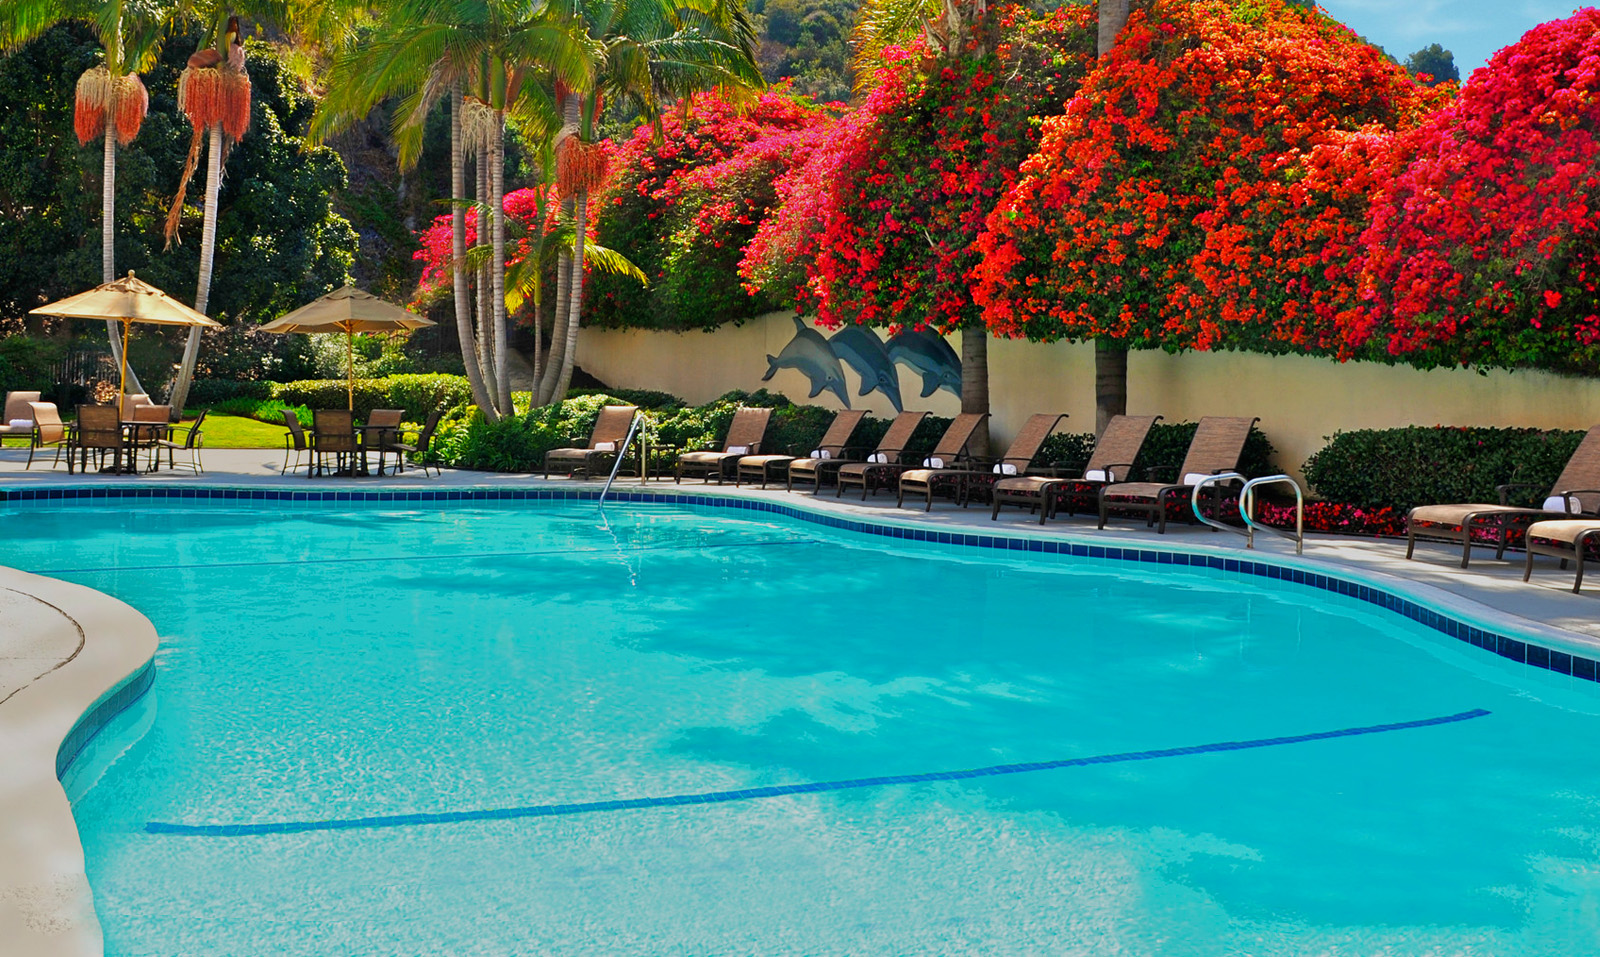 sheraton mission valley san diego hotel - remington hotels